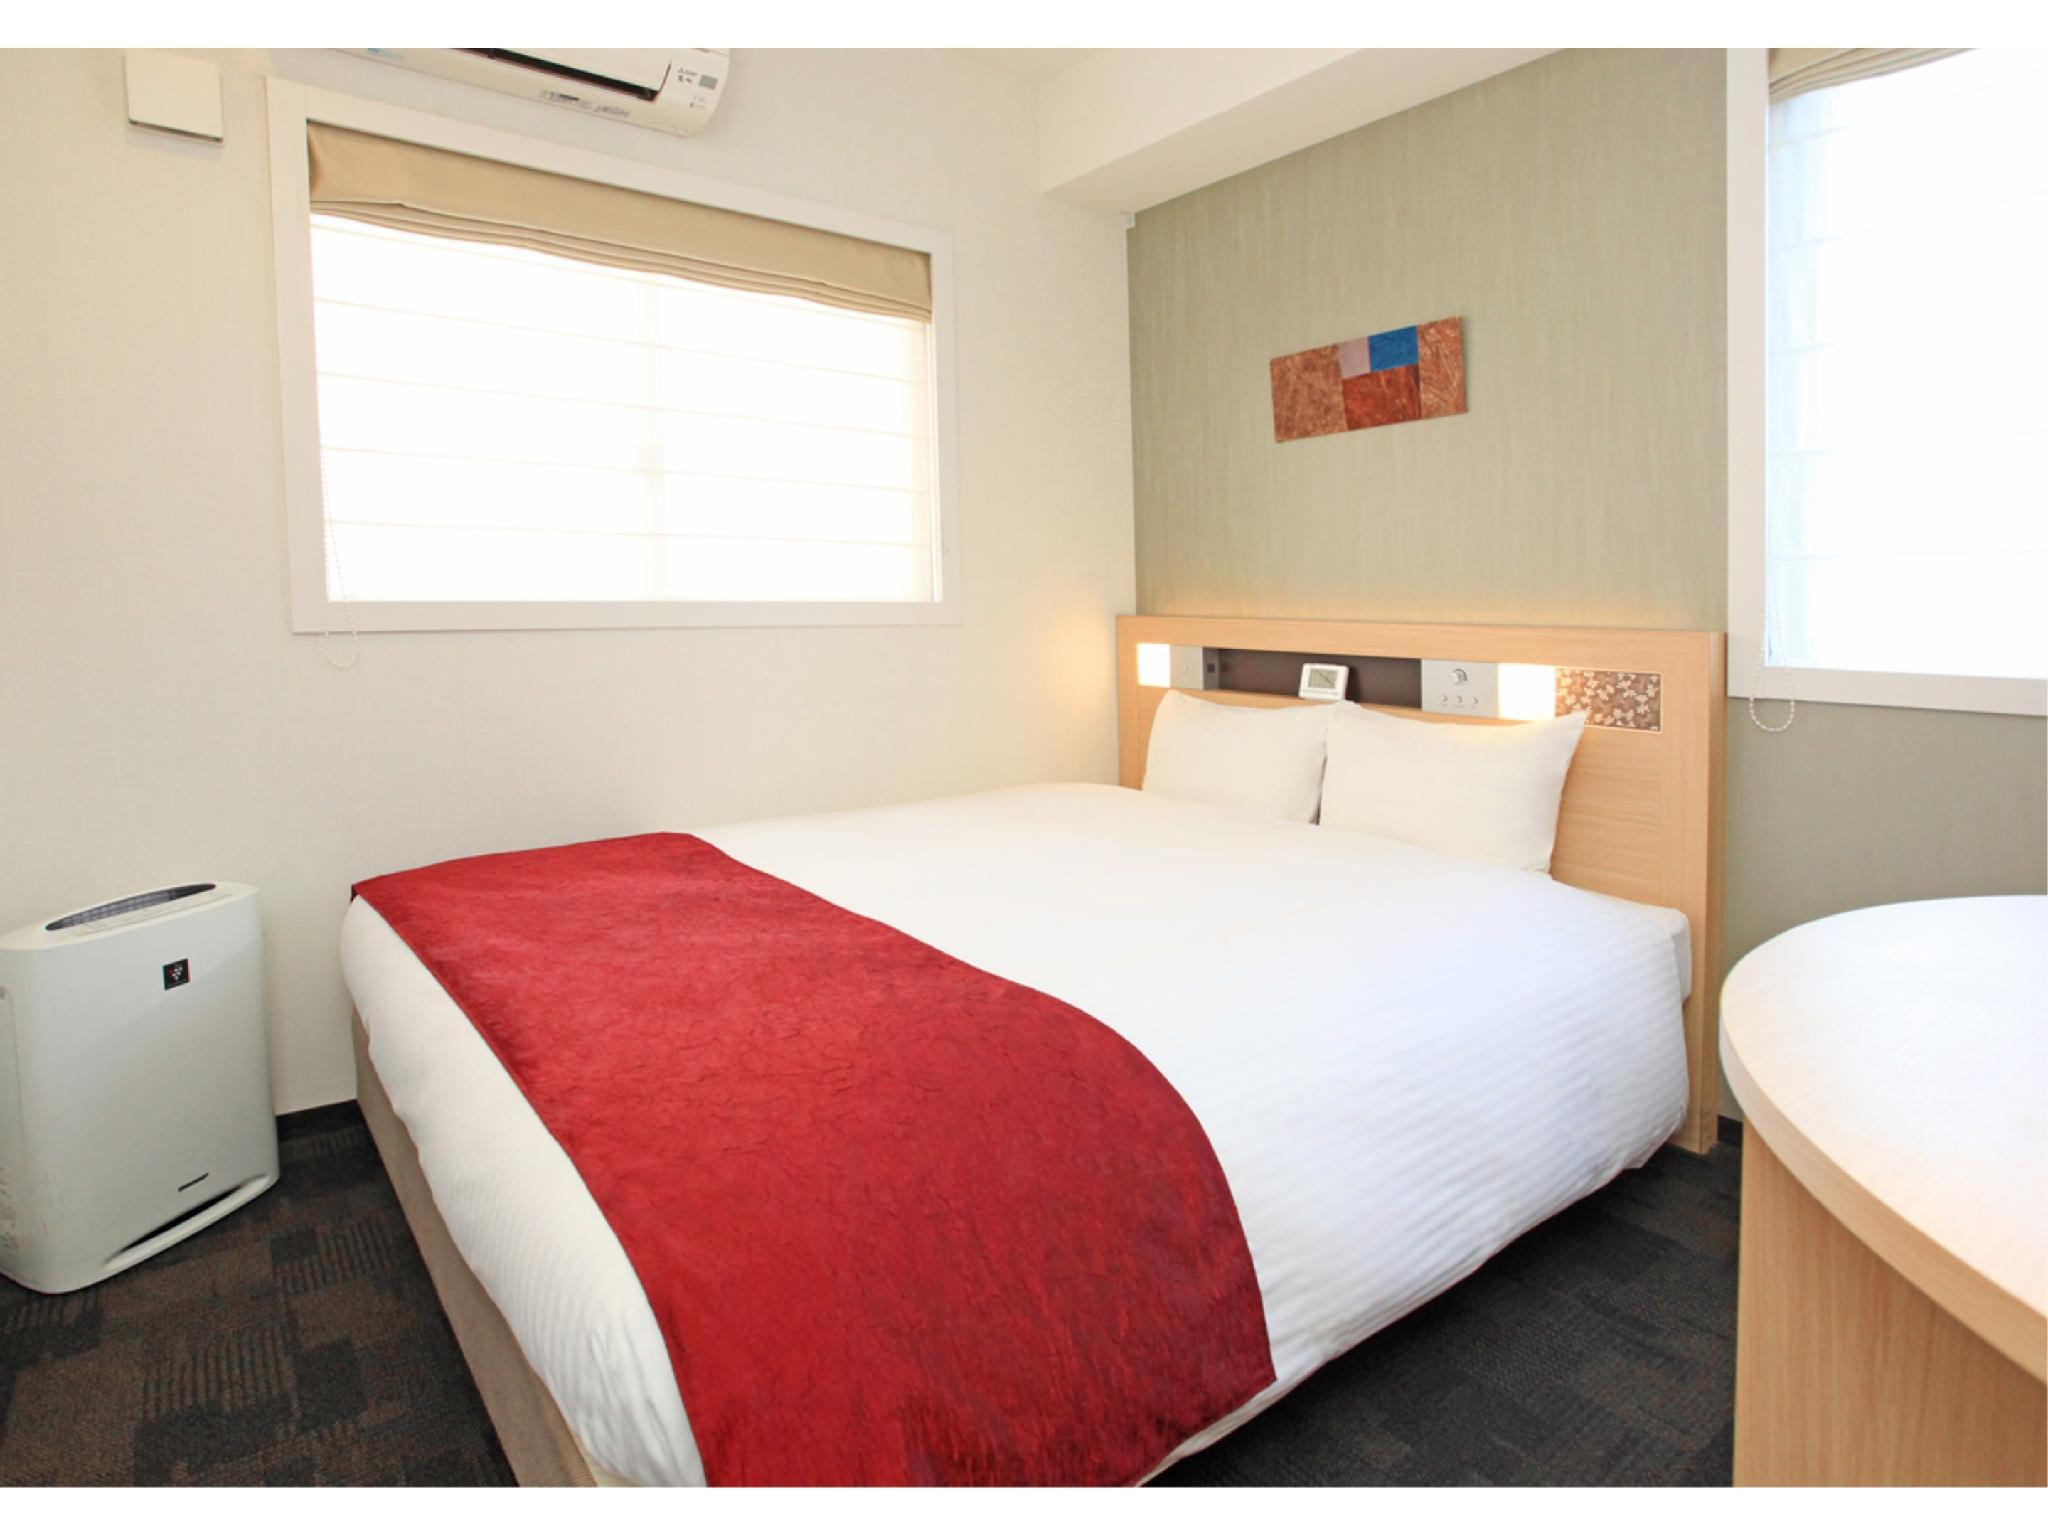 【ダブル】【禁煙】ベッド幅:195×160 (Double Room*Has shower, no bath in room)